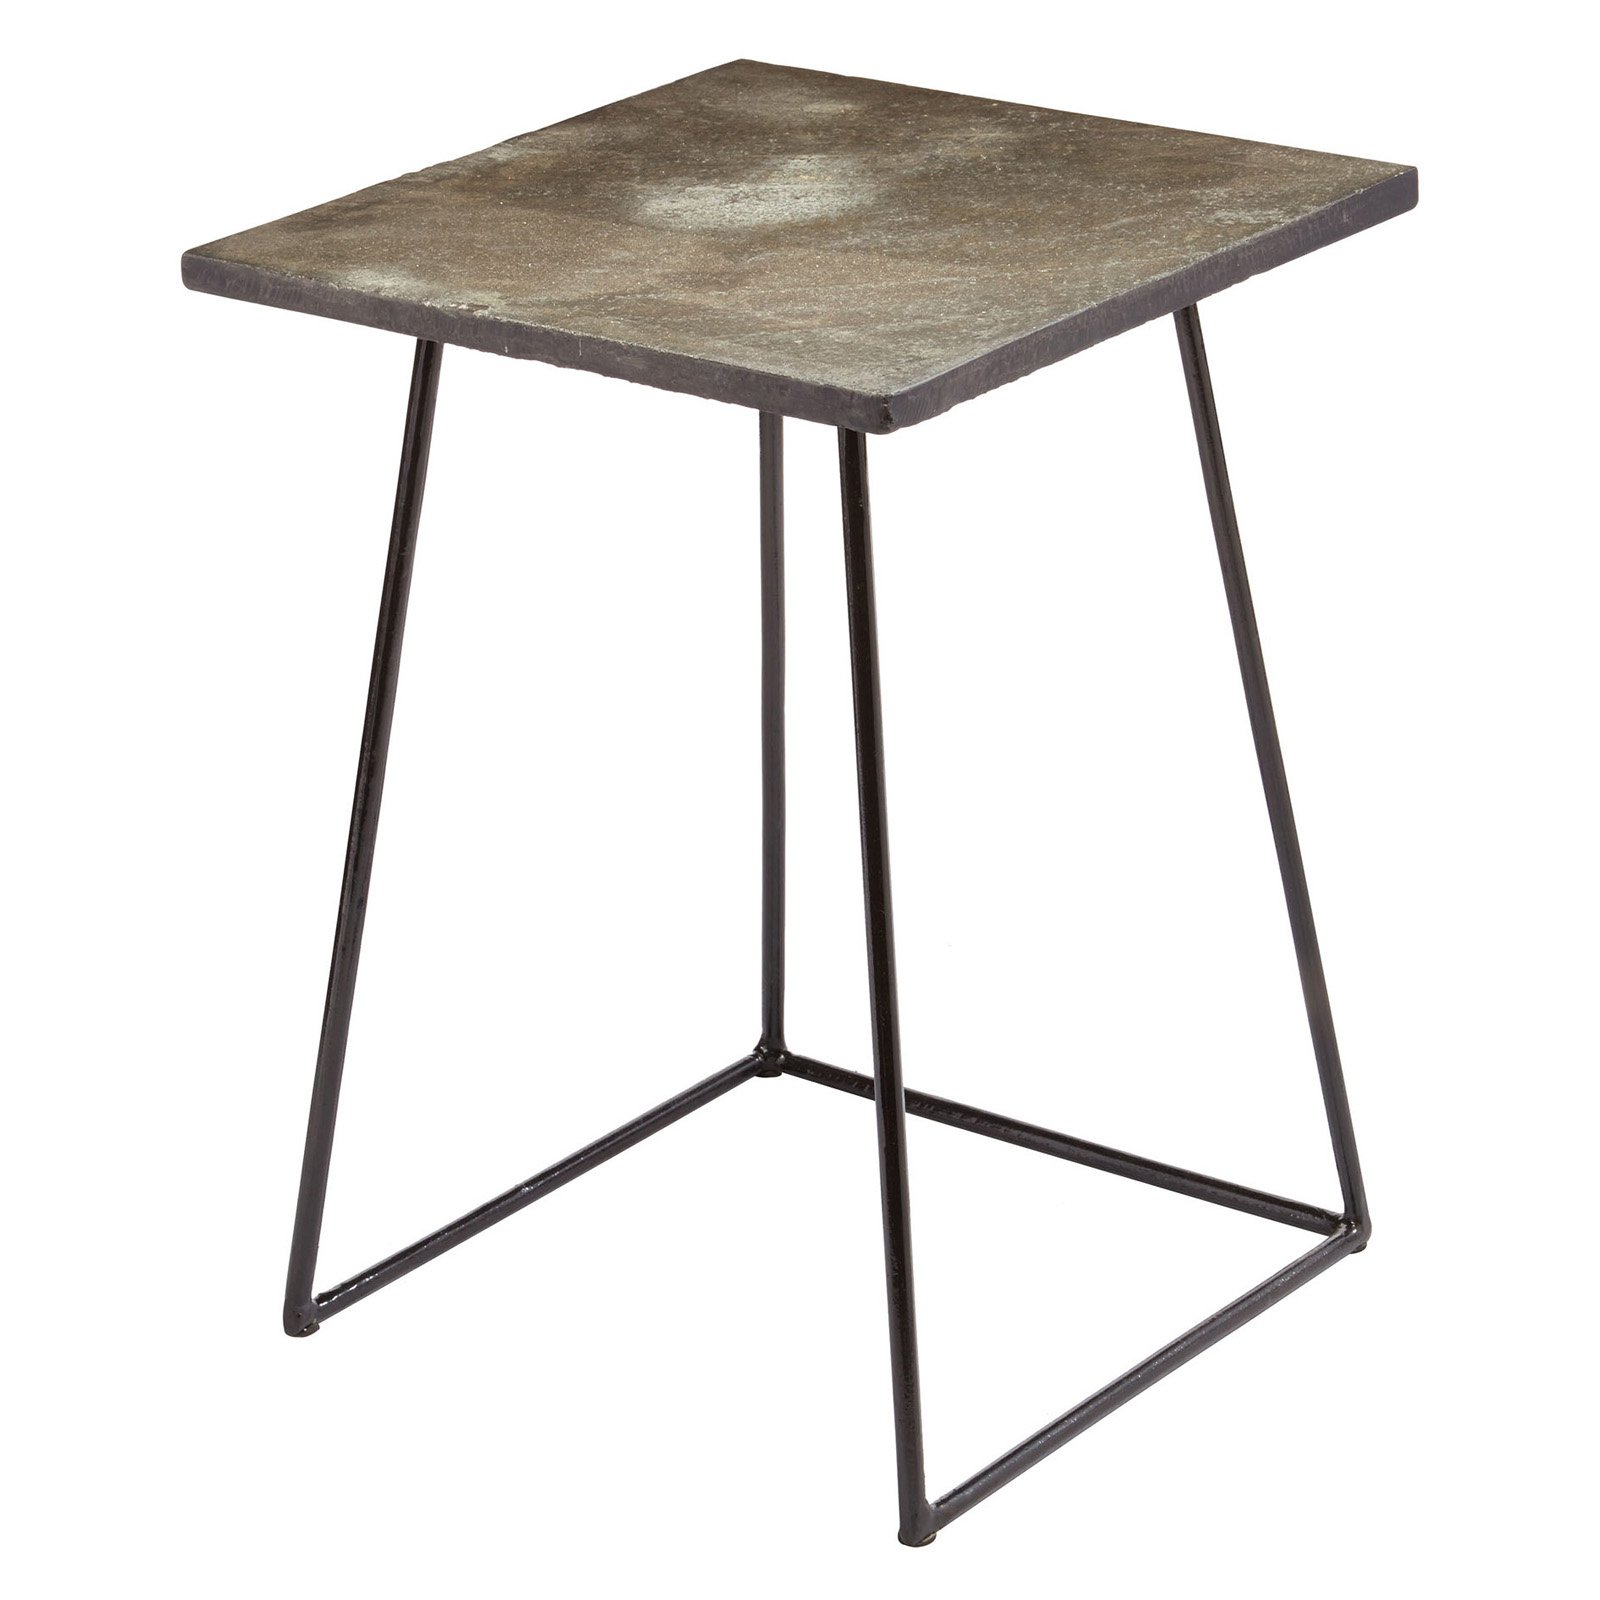 Dimond Home Concrete Accent Table by Dimond Home